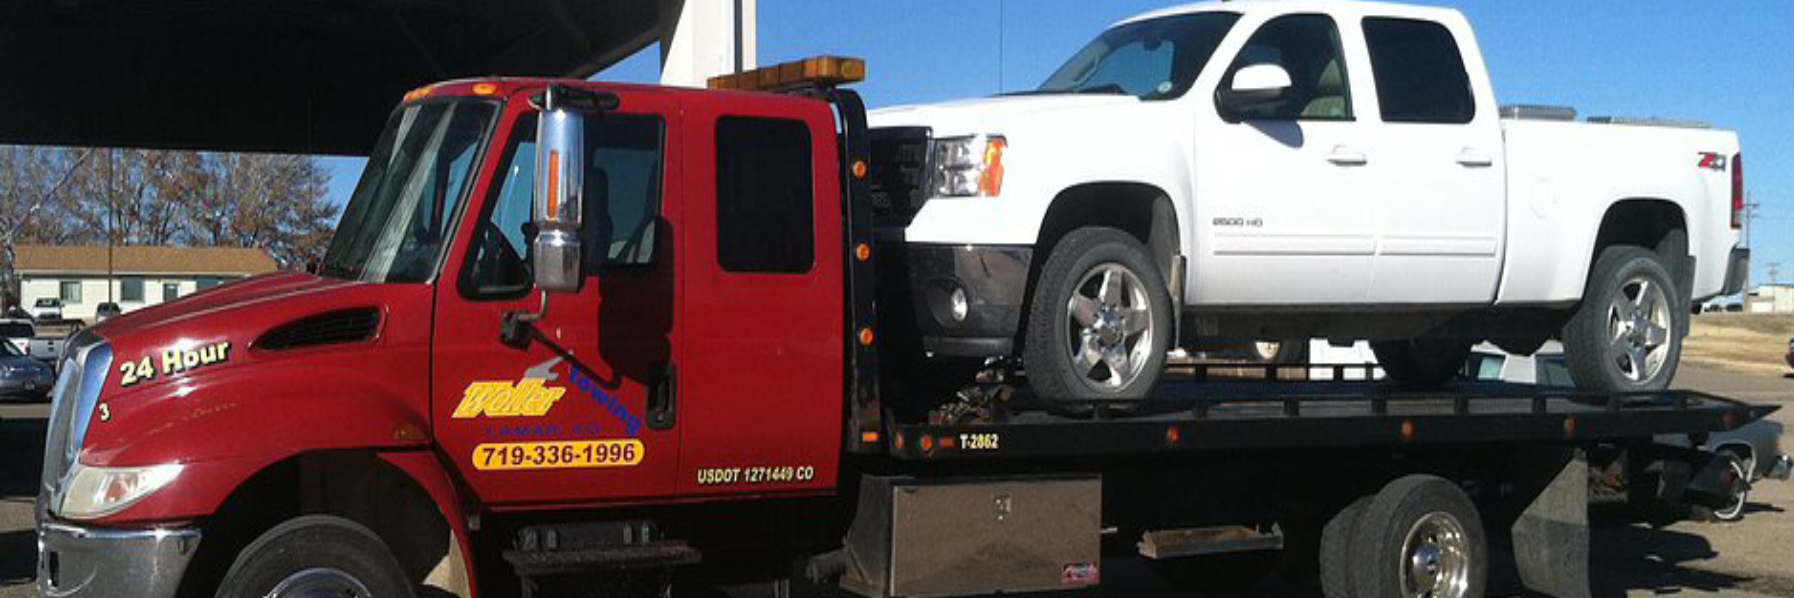 Andy Woller Towing Towing.com Profile Banner